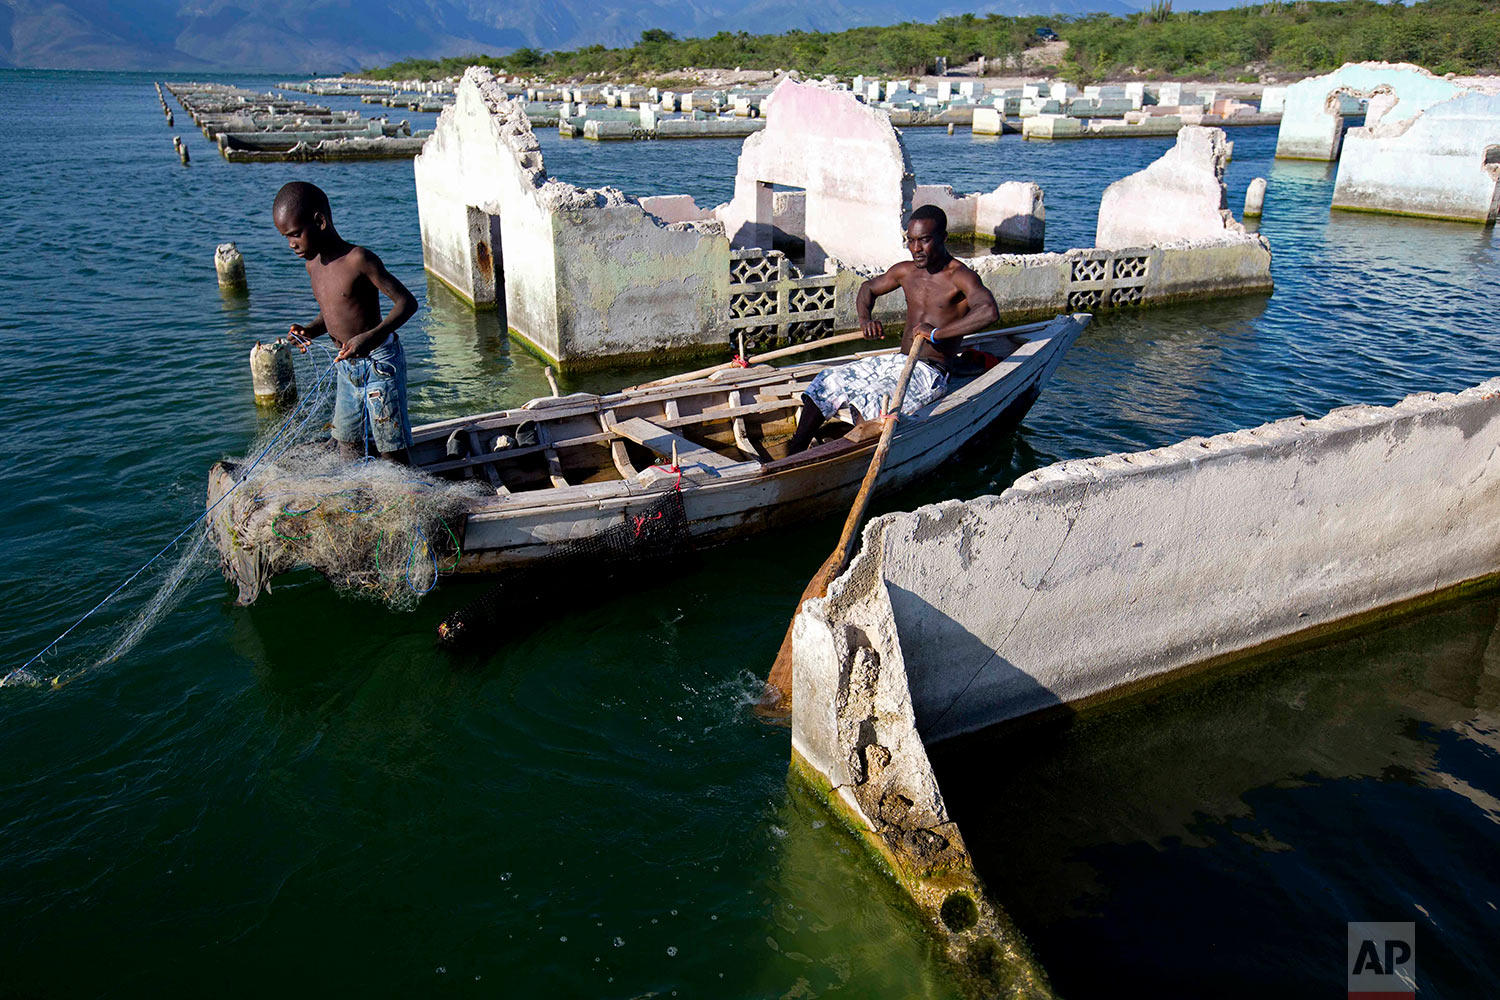 """In this April 20, 2018 photo, fisherman Miguel Louis checks on his nets with his 12-year-old son Dabens Louis, placed amid old, abandoned flooded homes on Lake Azuei in Fond Parisien, Haiti. A fish farming company growing tilapia set up their operation on this lake in 2014. """"Even small fish are hard to find"""" said Louis. (AP Photo/Dieu Nalio Chery)"""